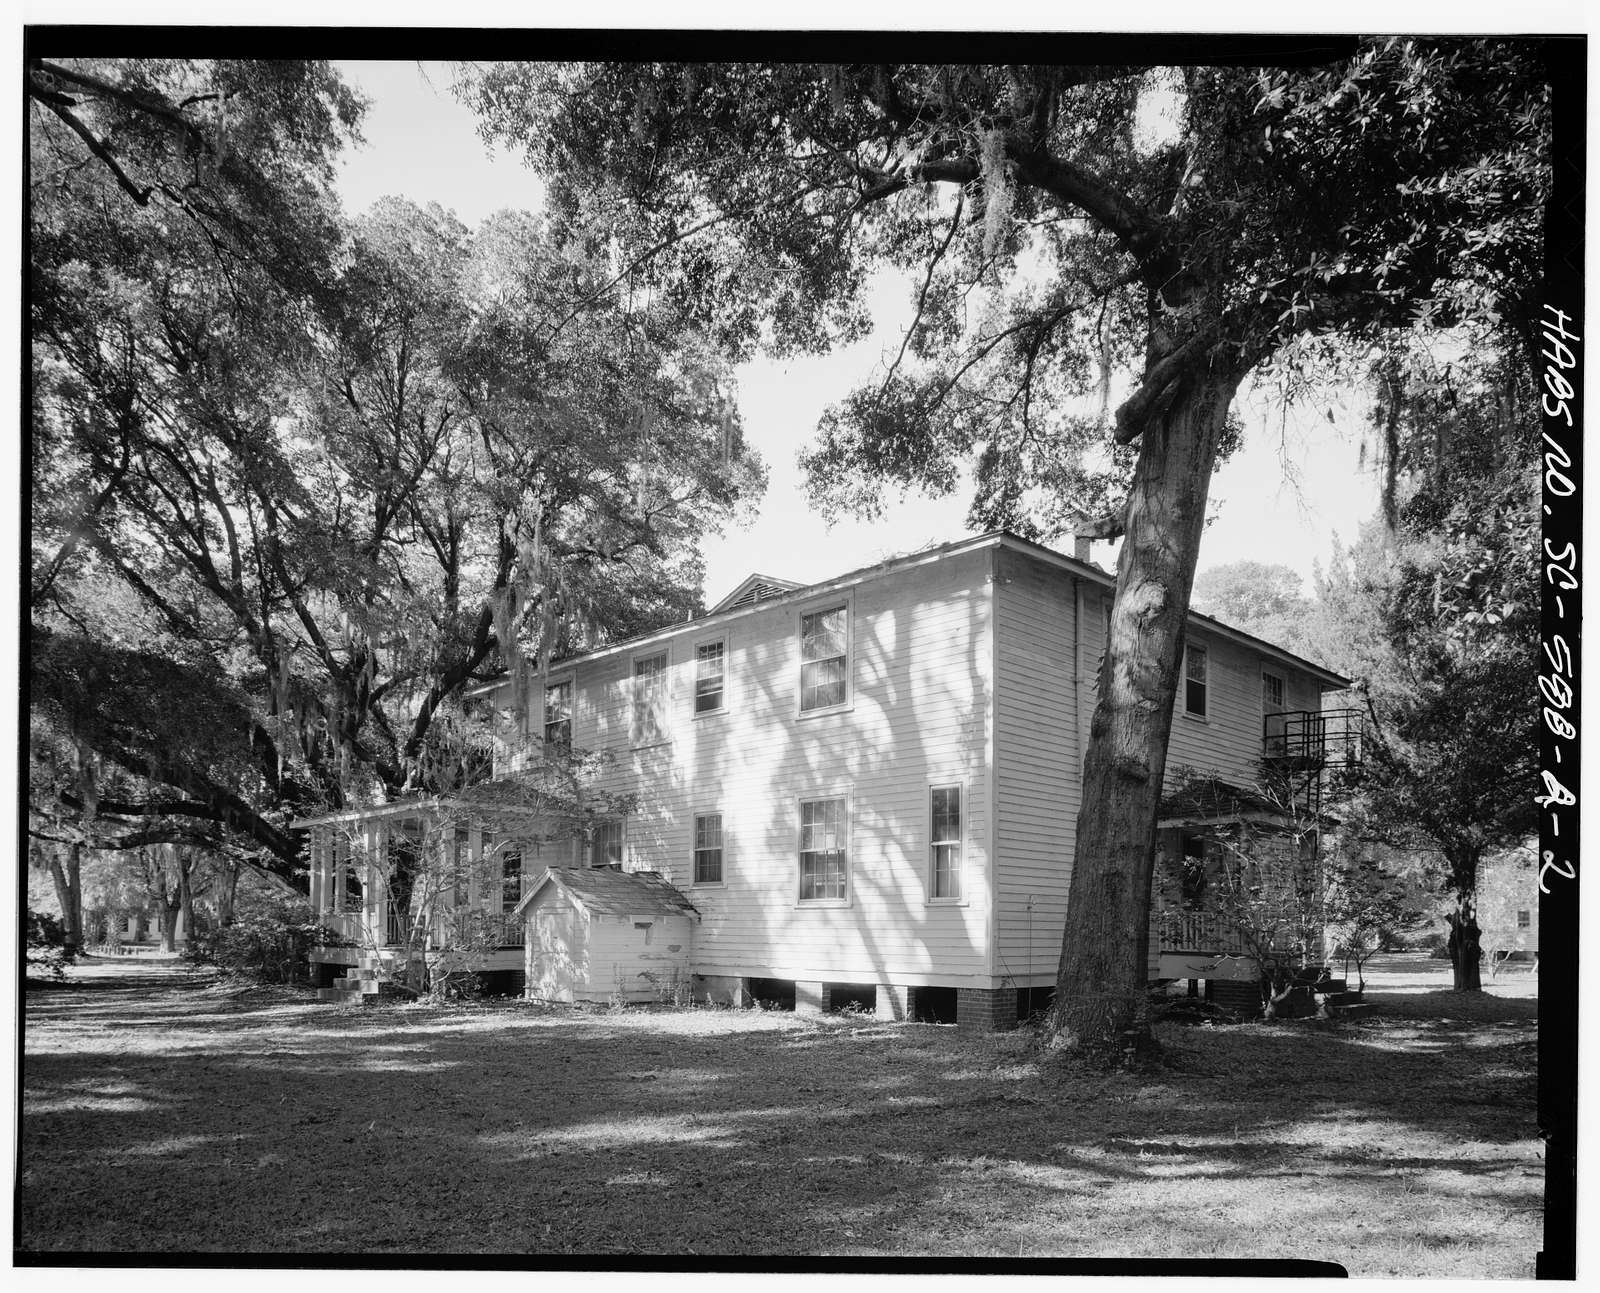 Penn School Historic District, Arnett House, SC Route 37, 1 mile South of Frogmore, St. Helena Island, Frogmore, Beaufort County, SC